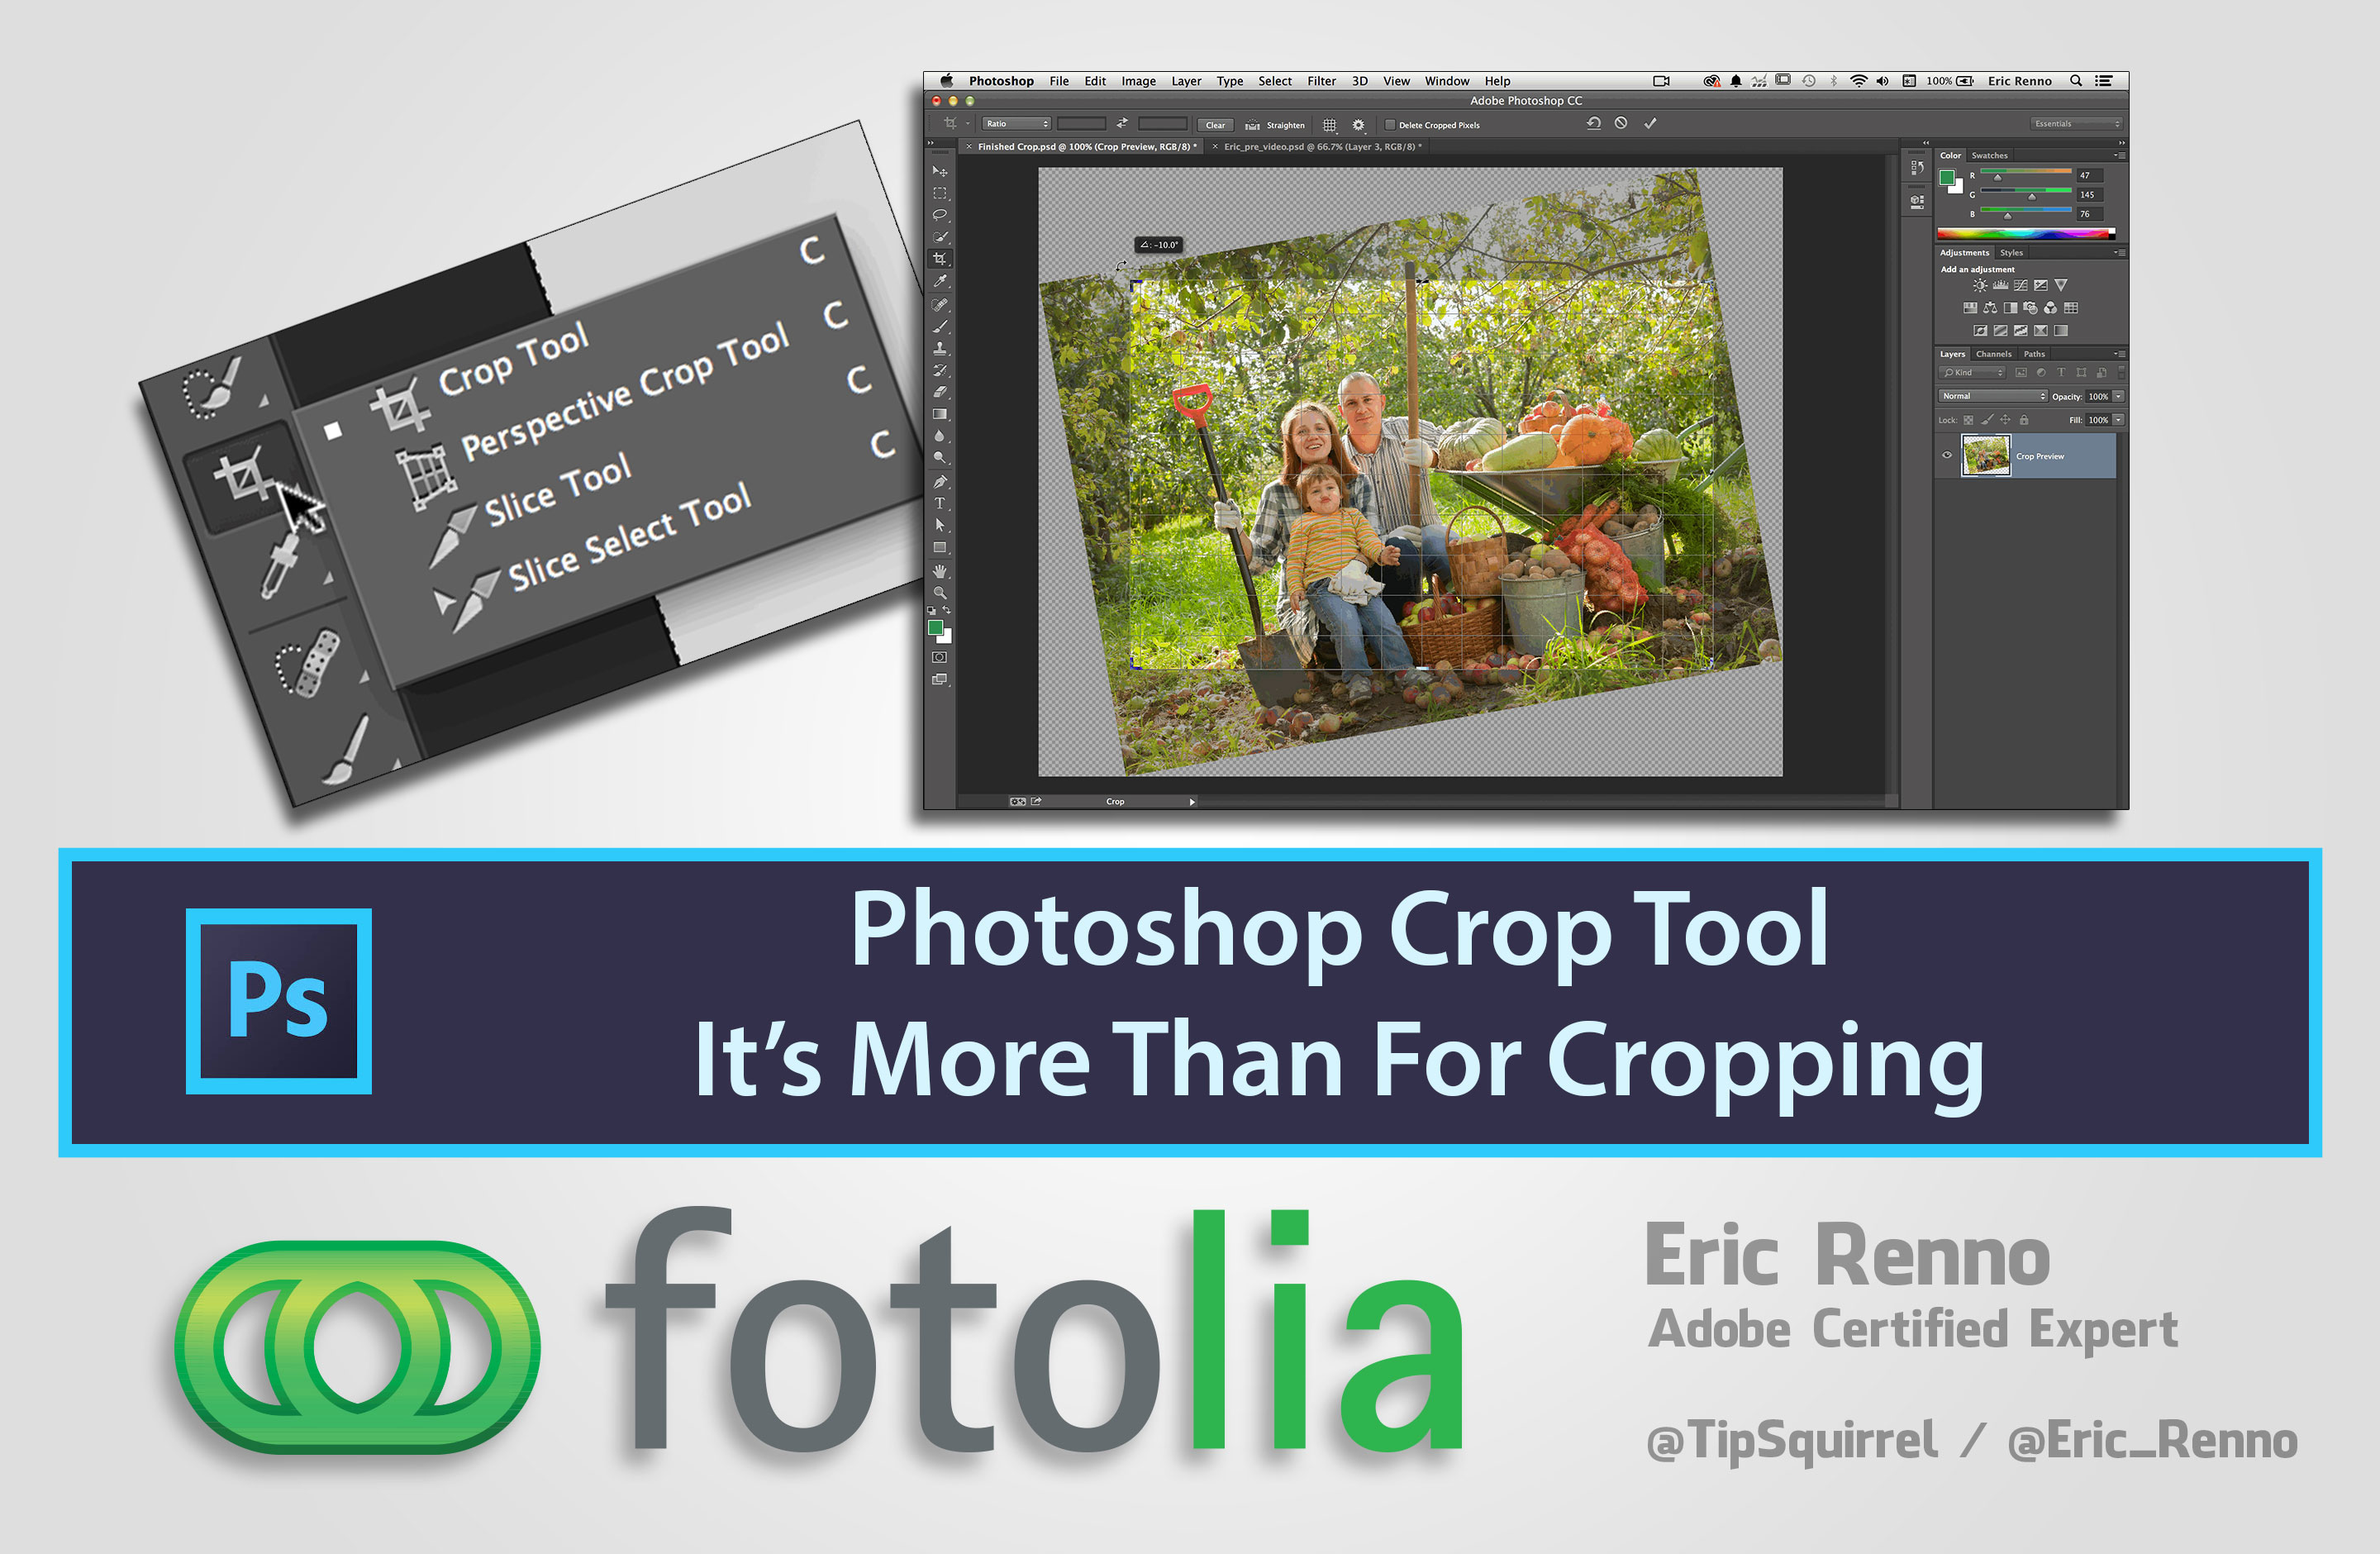 Photoshop Crop Tool - Its Not Just For Cropping - Eric Renno